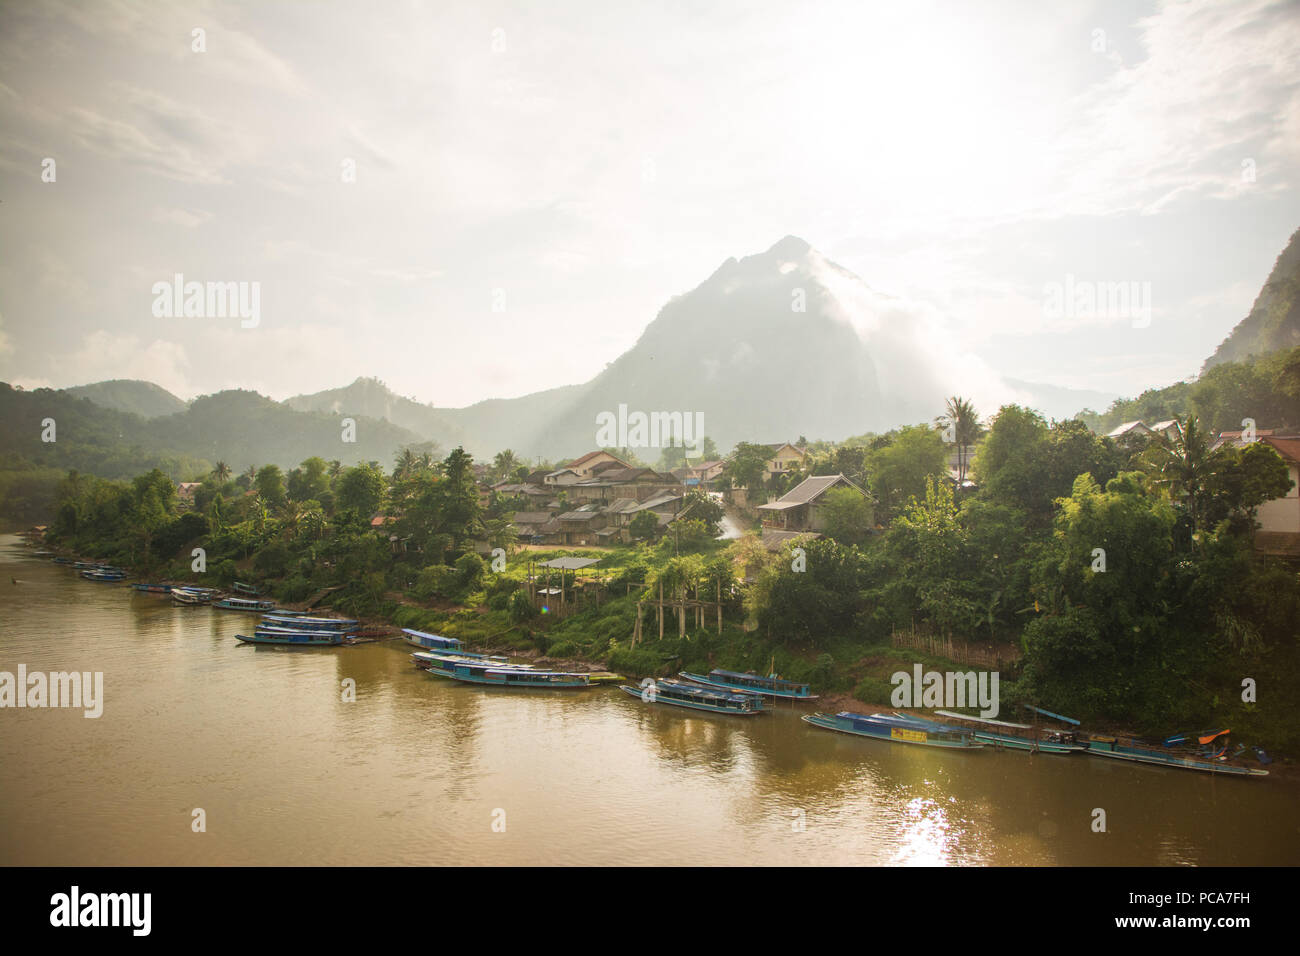 The village of Nong Khiaw at sunset after the rain. - Stock Image